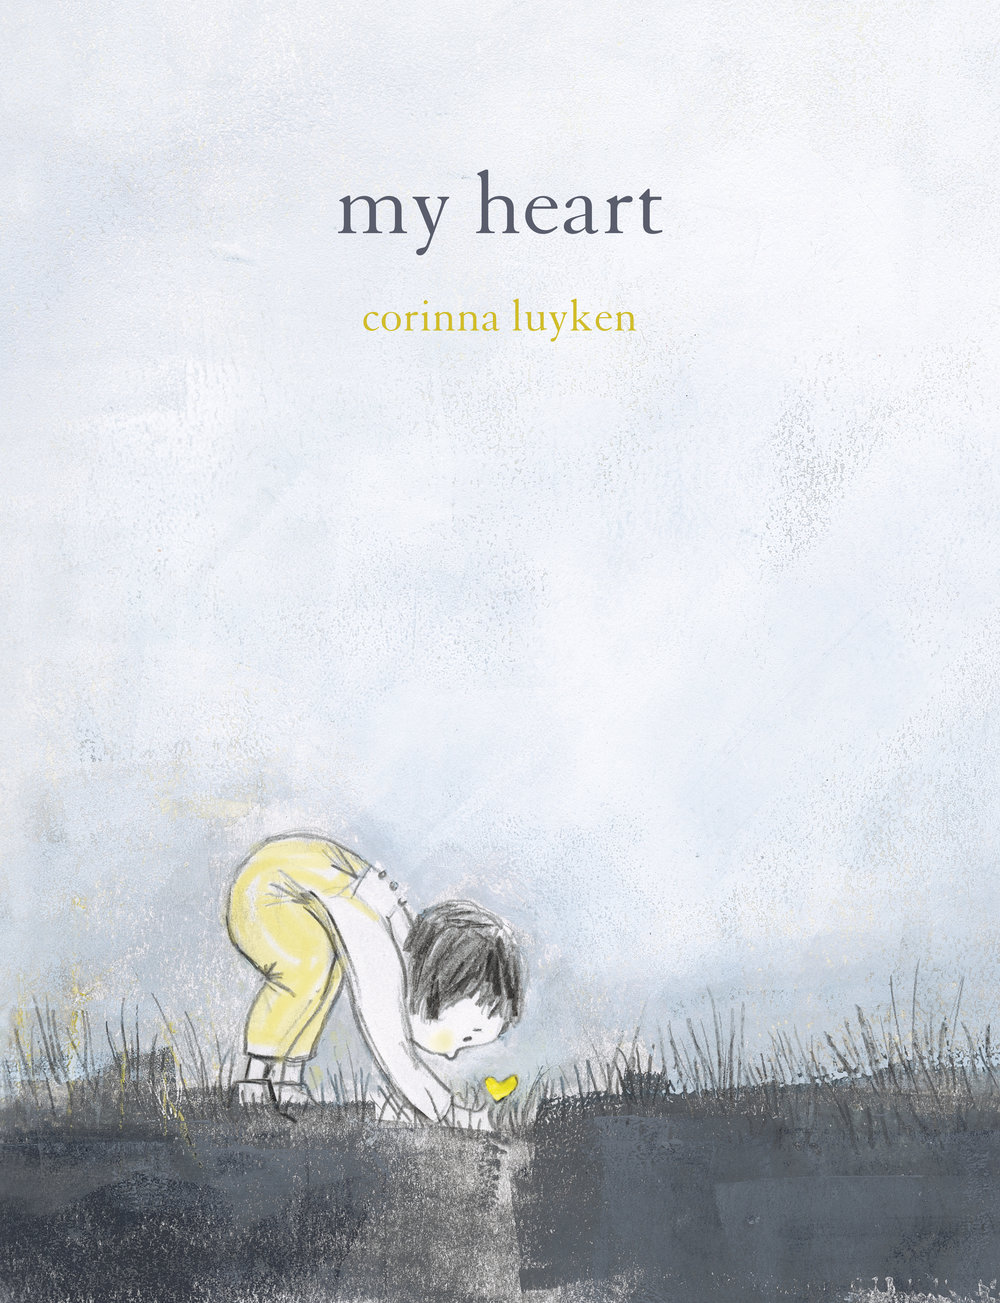 My Heart_Corinna Luyken_high-res cover.jpg